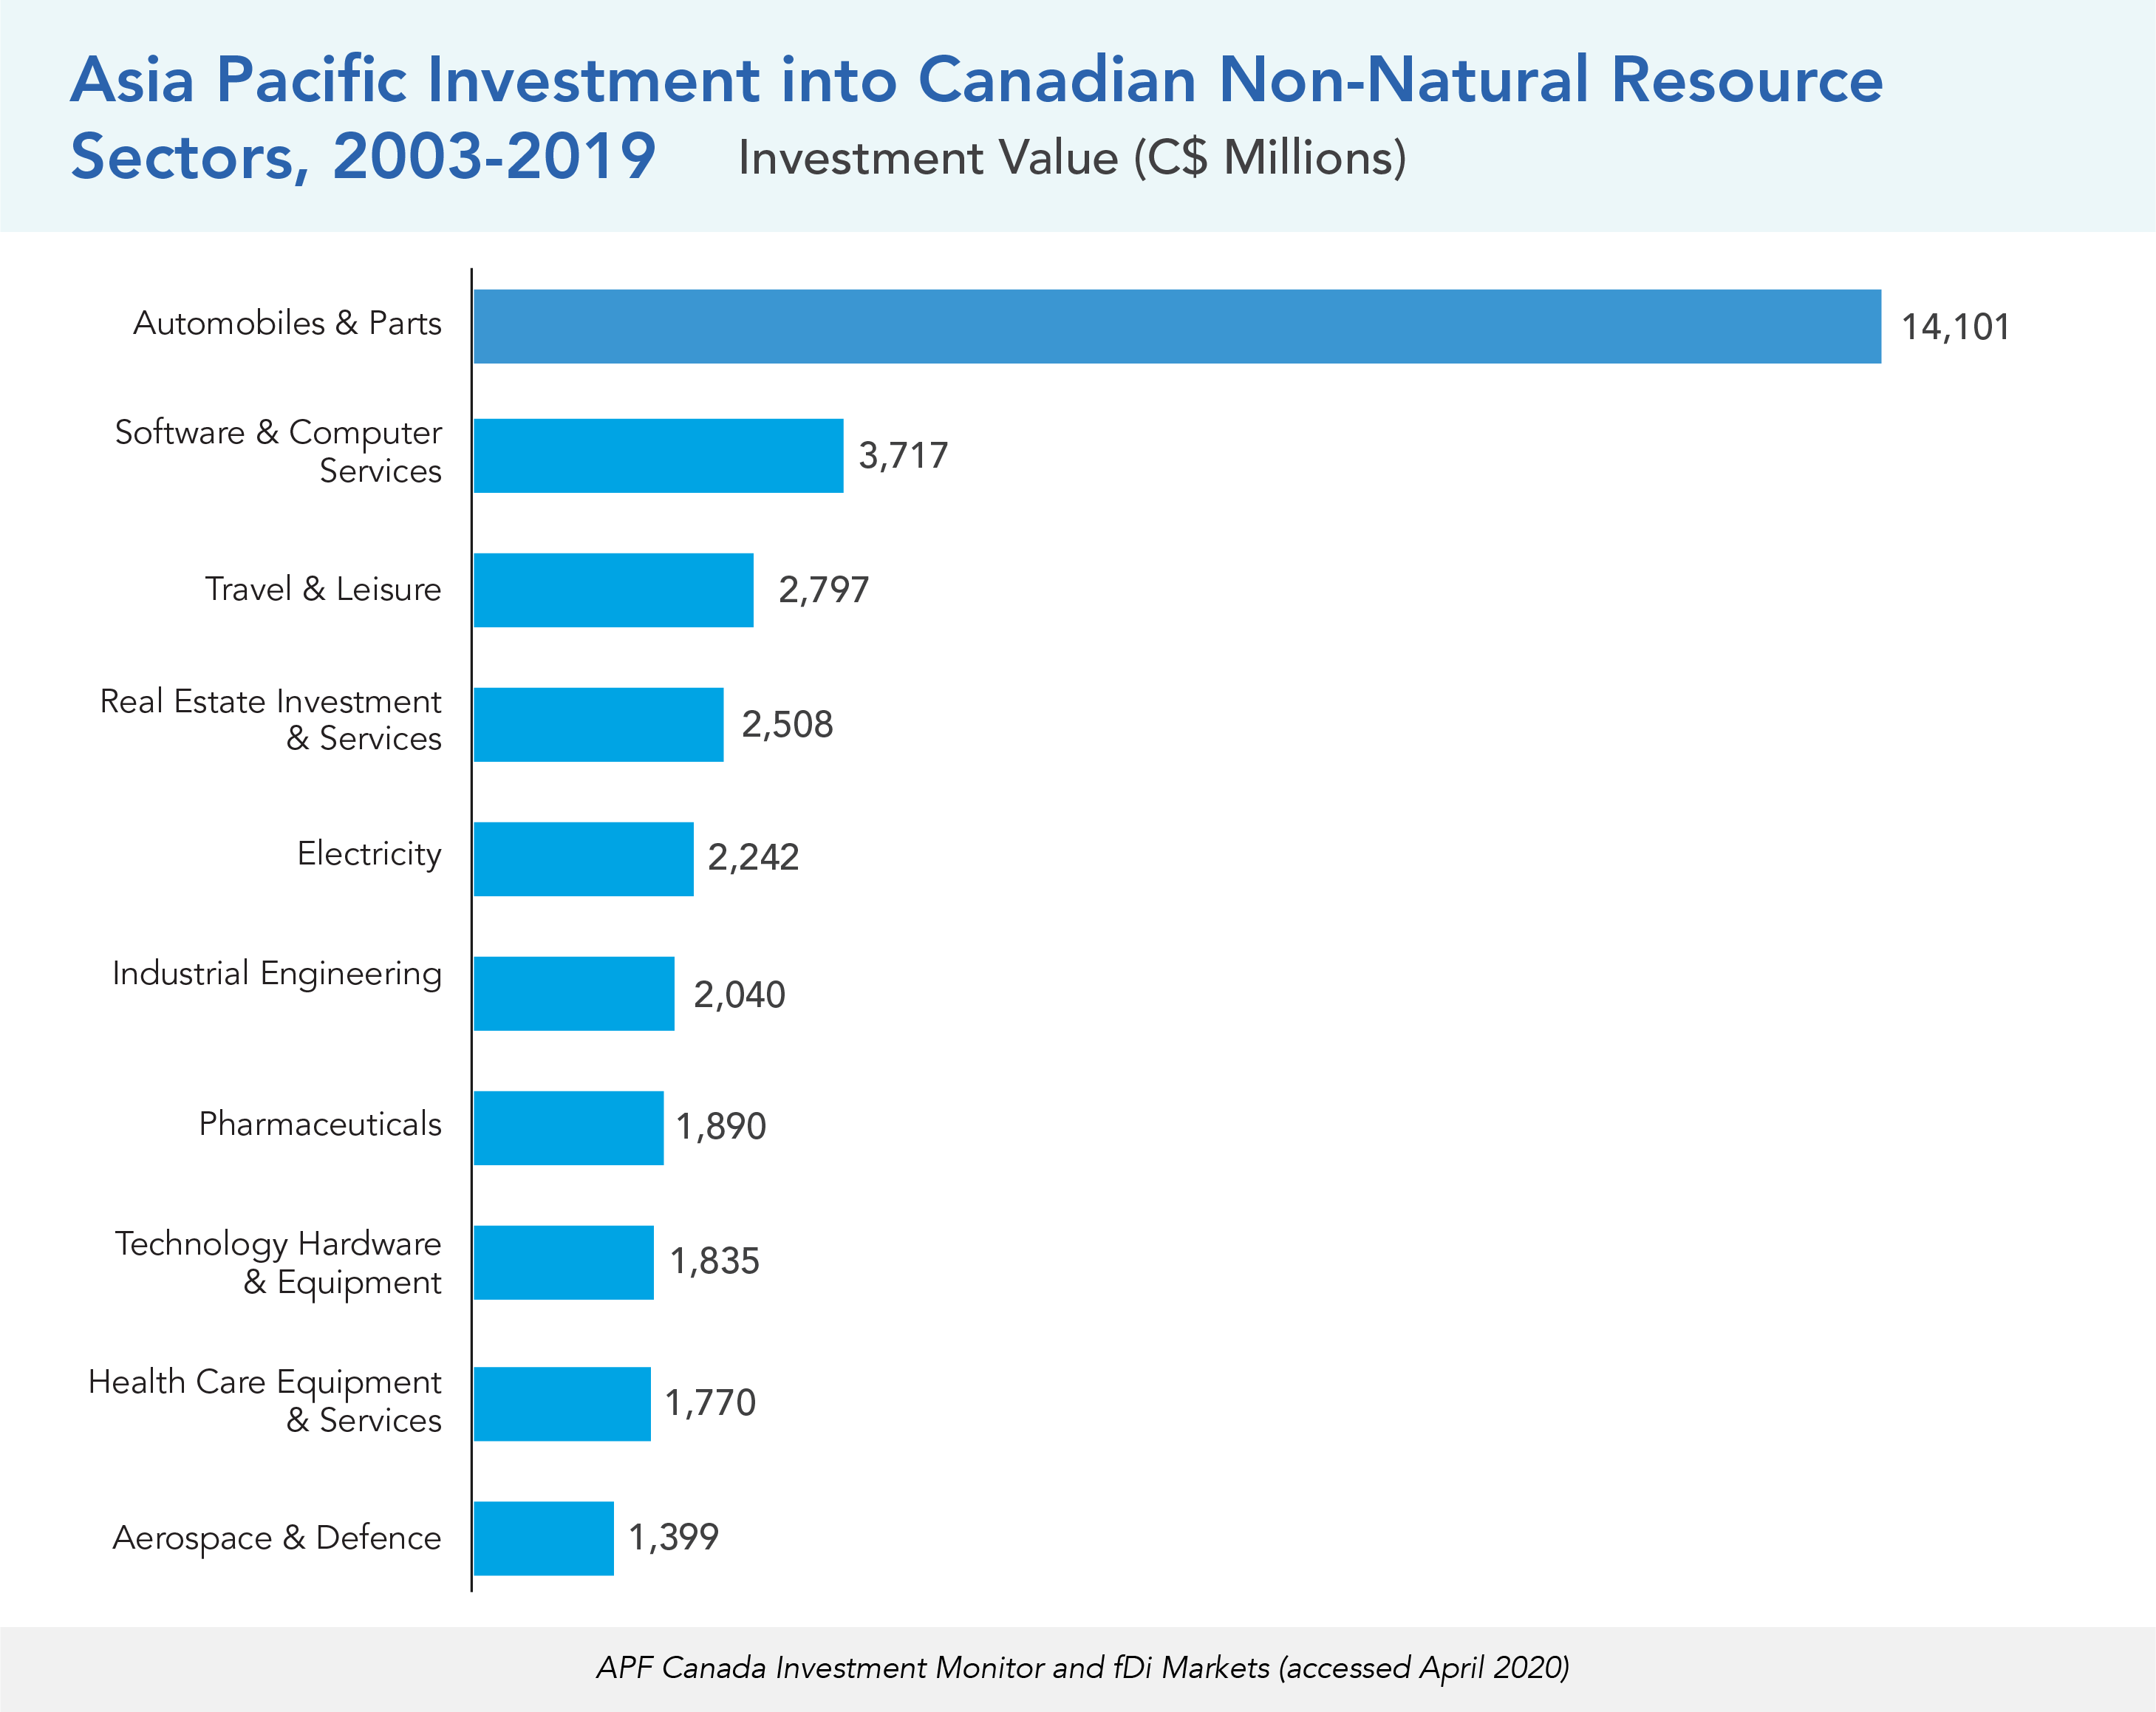 Asia Pacific Investment into Canadian Non-Natural Resource Sectors, 2003-2019